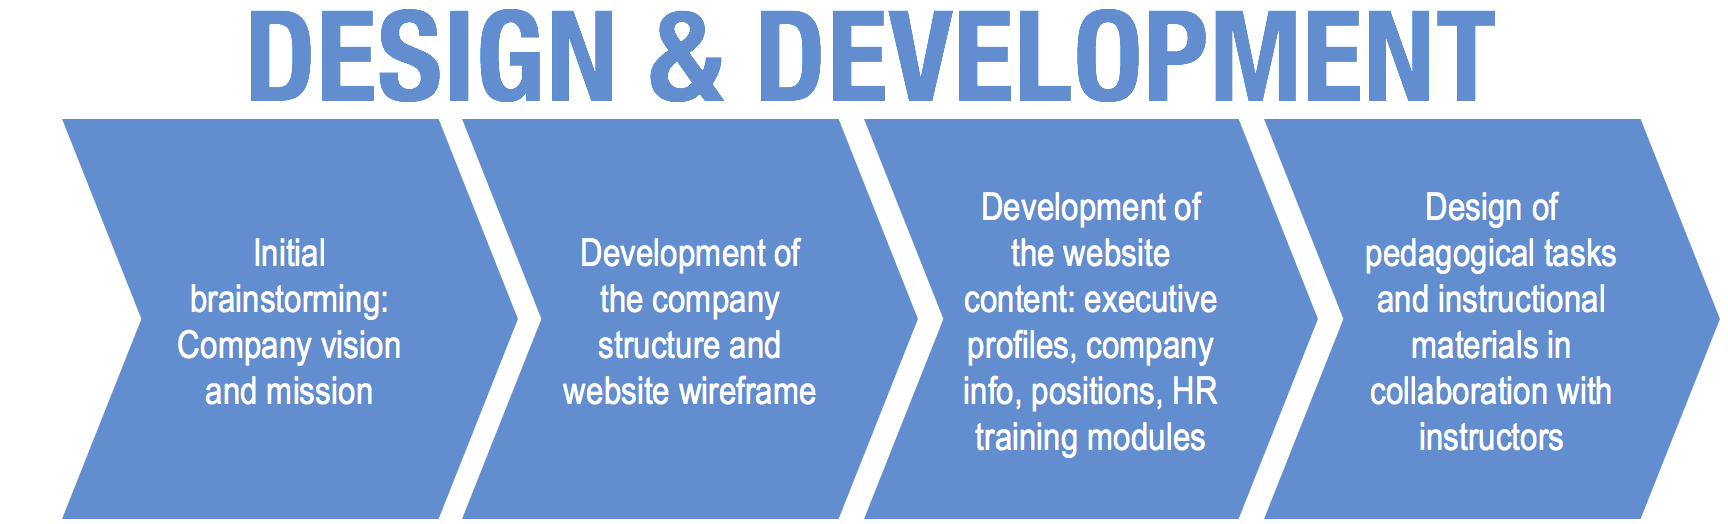 The steps in Design and Development